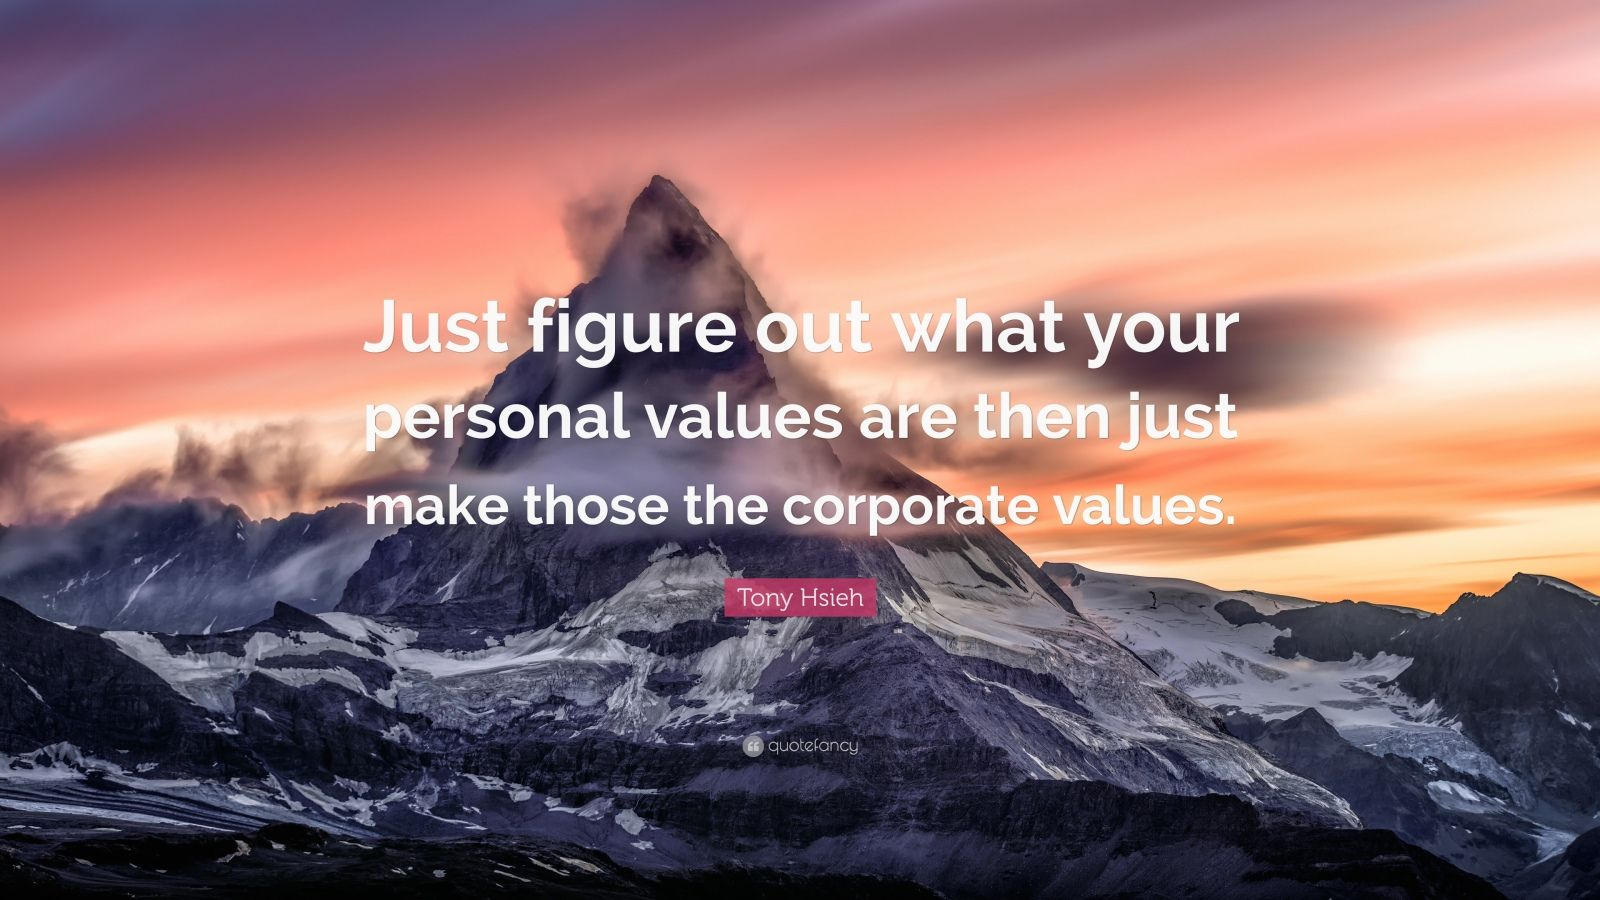 """Tony Hsieh Quote: """"Just figure out what your personal values are then just make those the corporate values."""""""